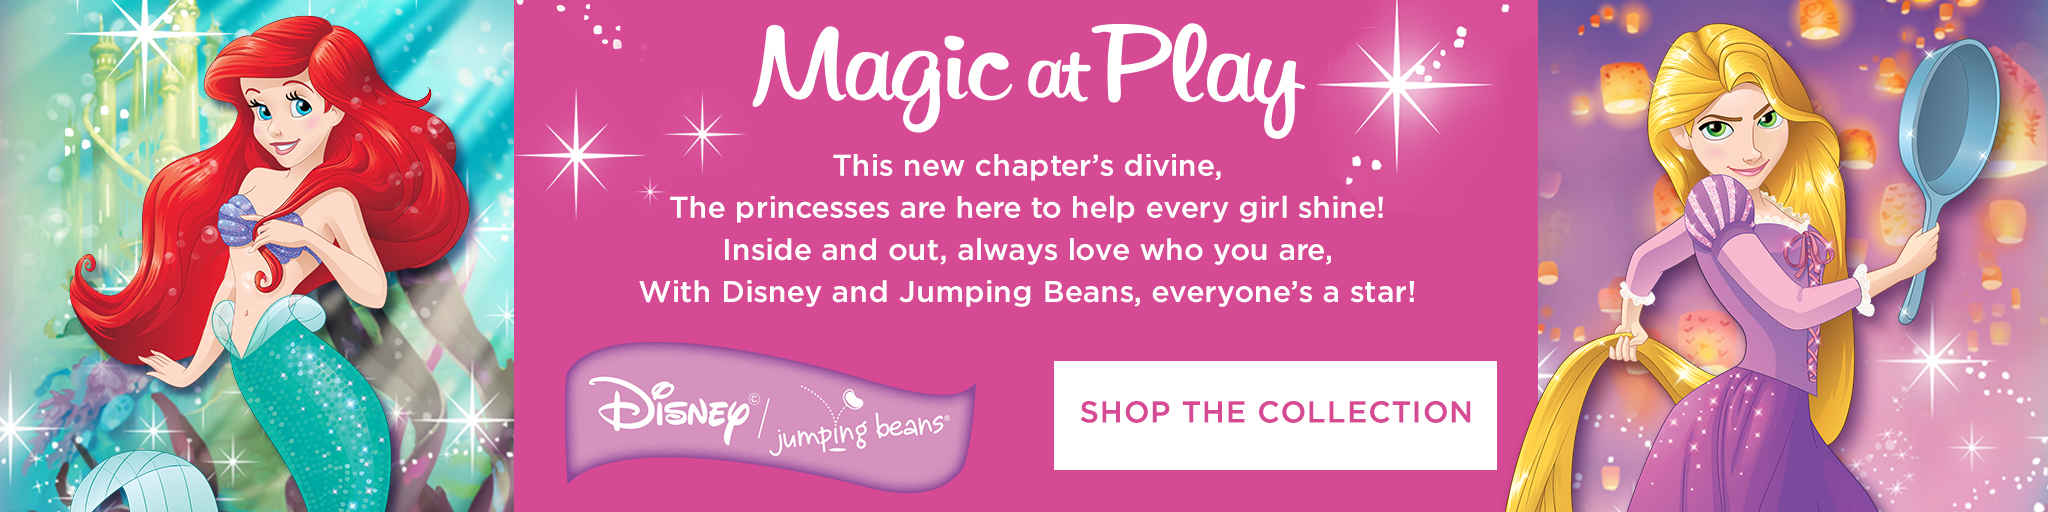 Disney Princess Ariel, Rapunzel, Jasmine and Belle clothing by Jumping Beans